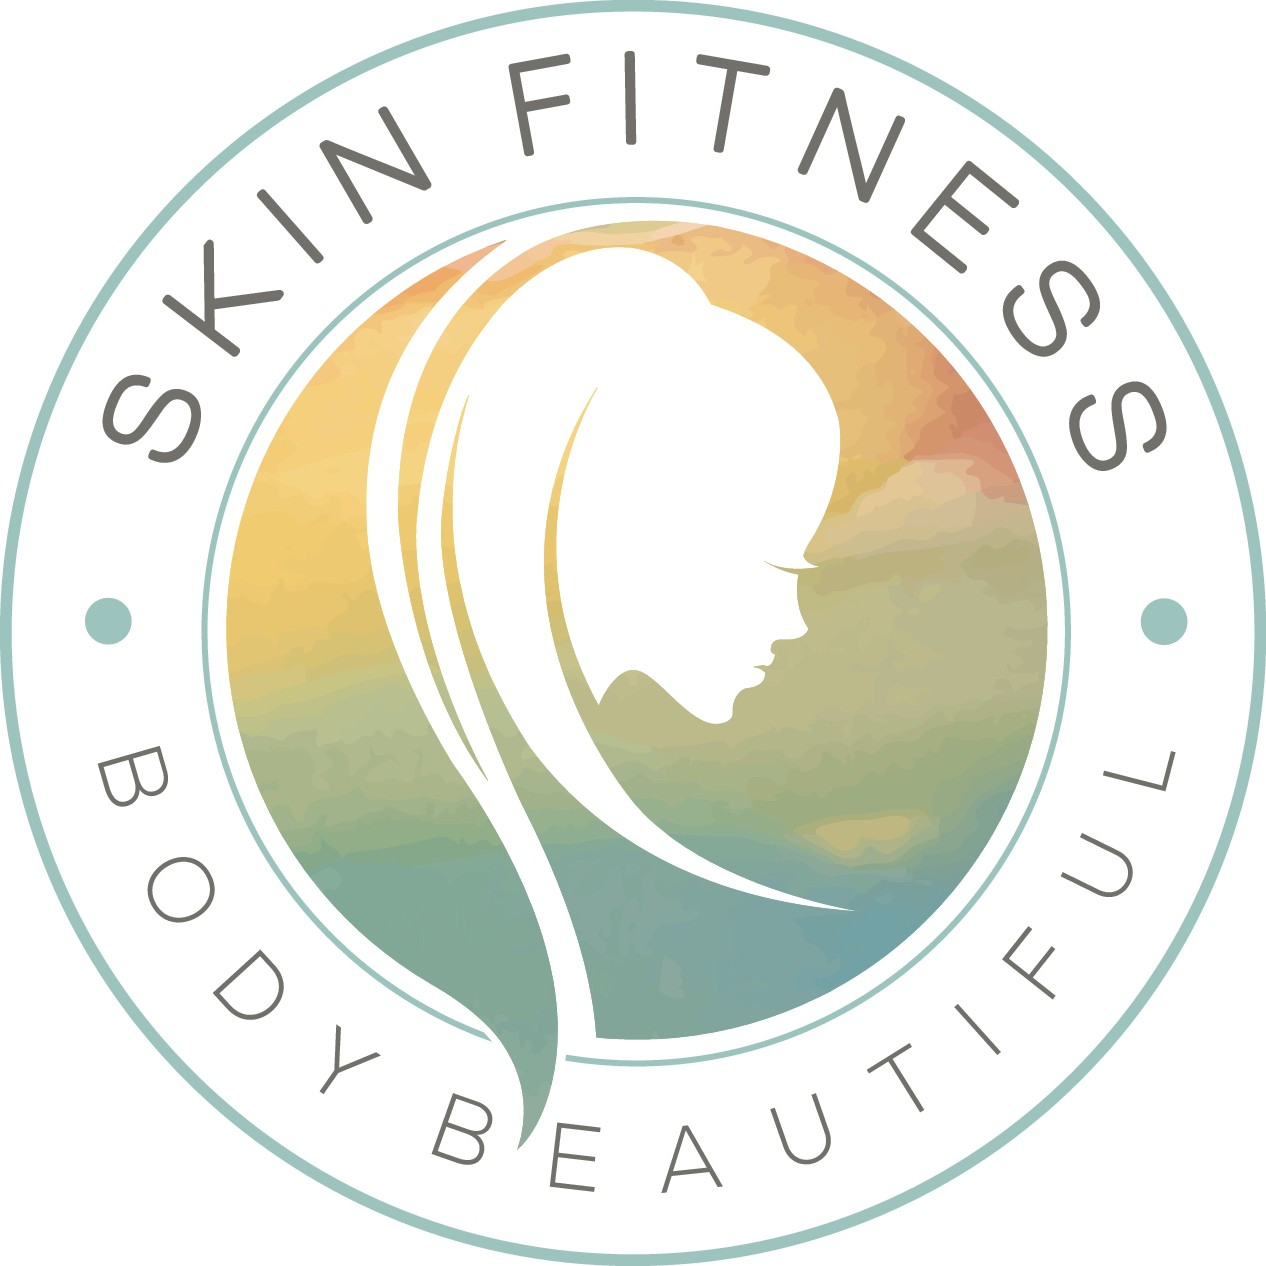 Sundance Medical Spa will change names to: Skin Fitness